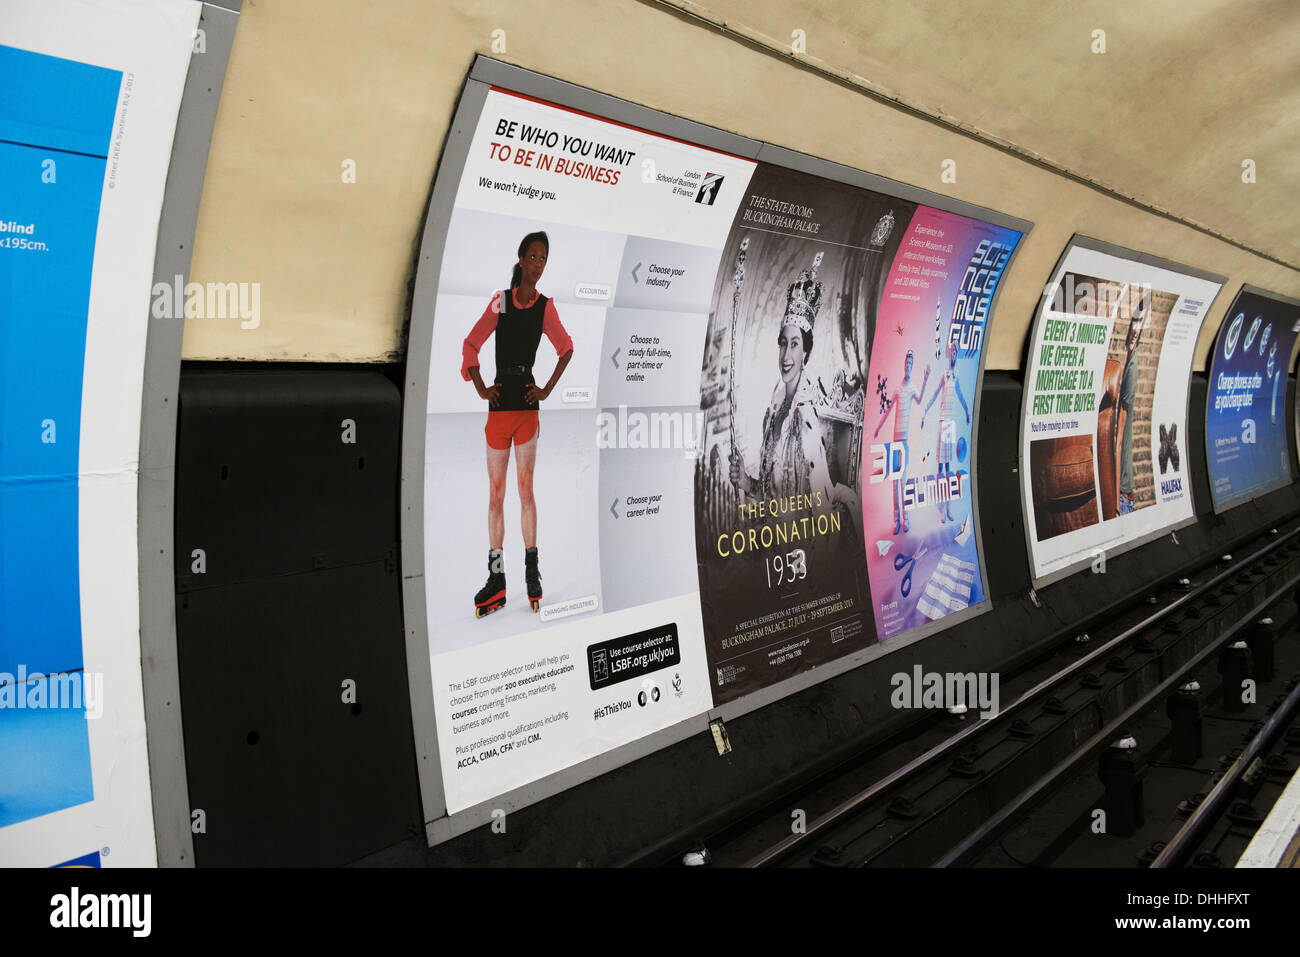 Poster sites on the London underground - Stock Image